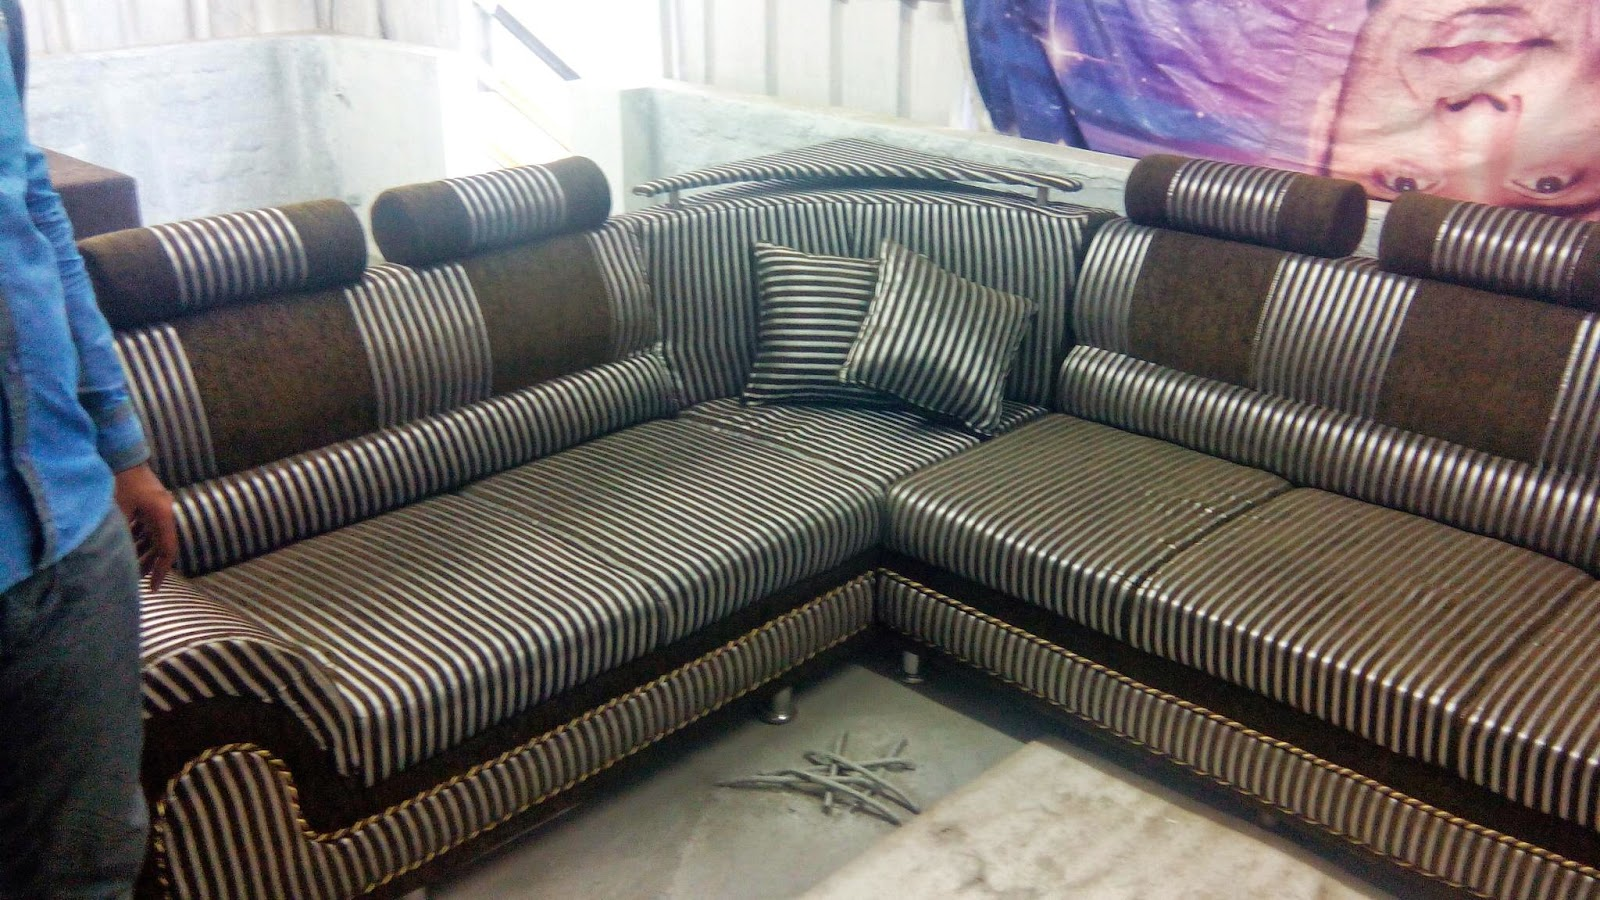 Sofa Set Price In Valsad We Deal In Sofa Set Manufacture At Lowest Cost Compare To